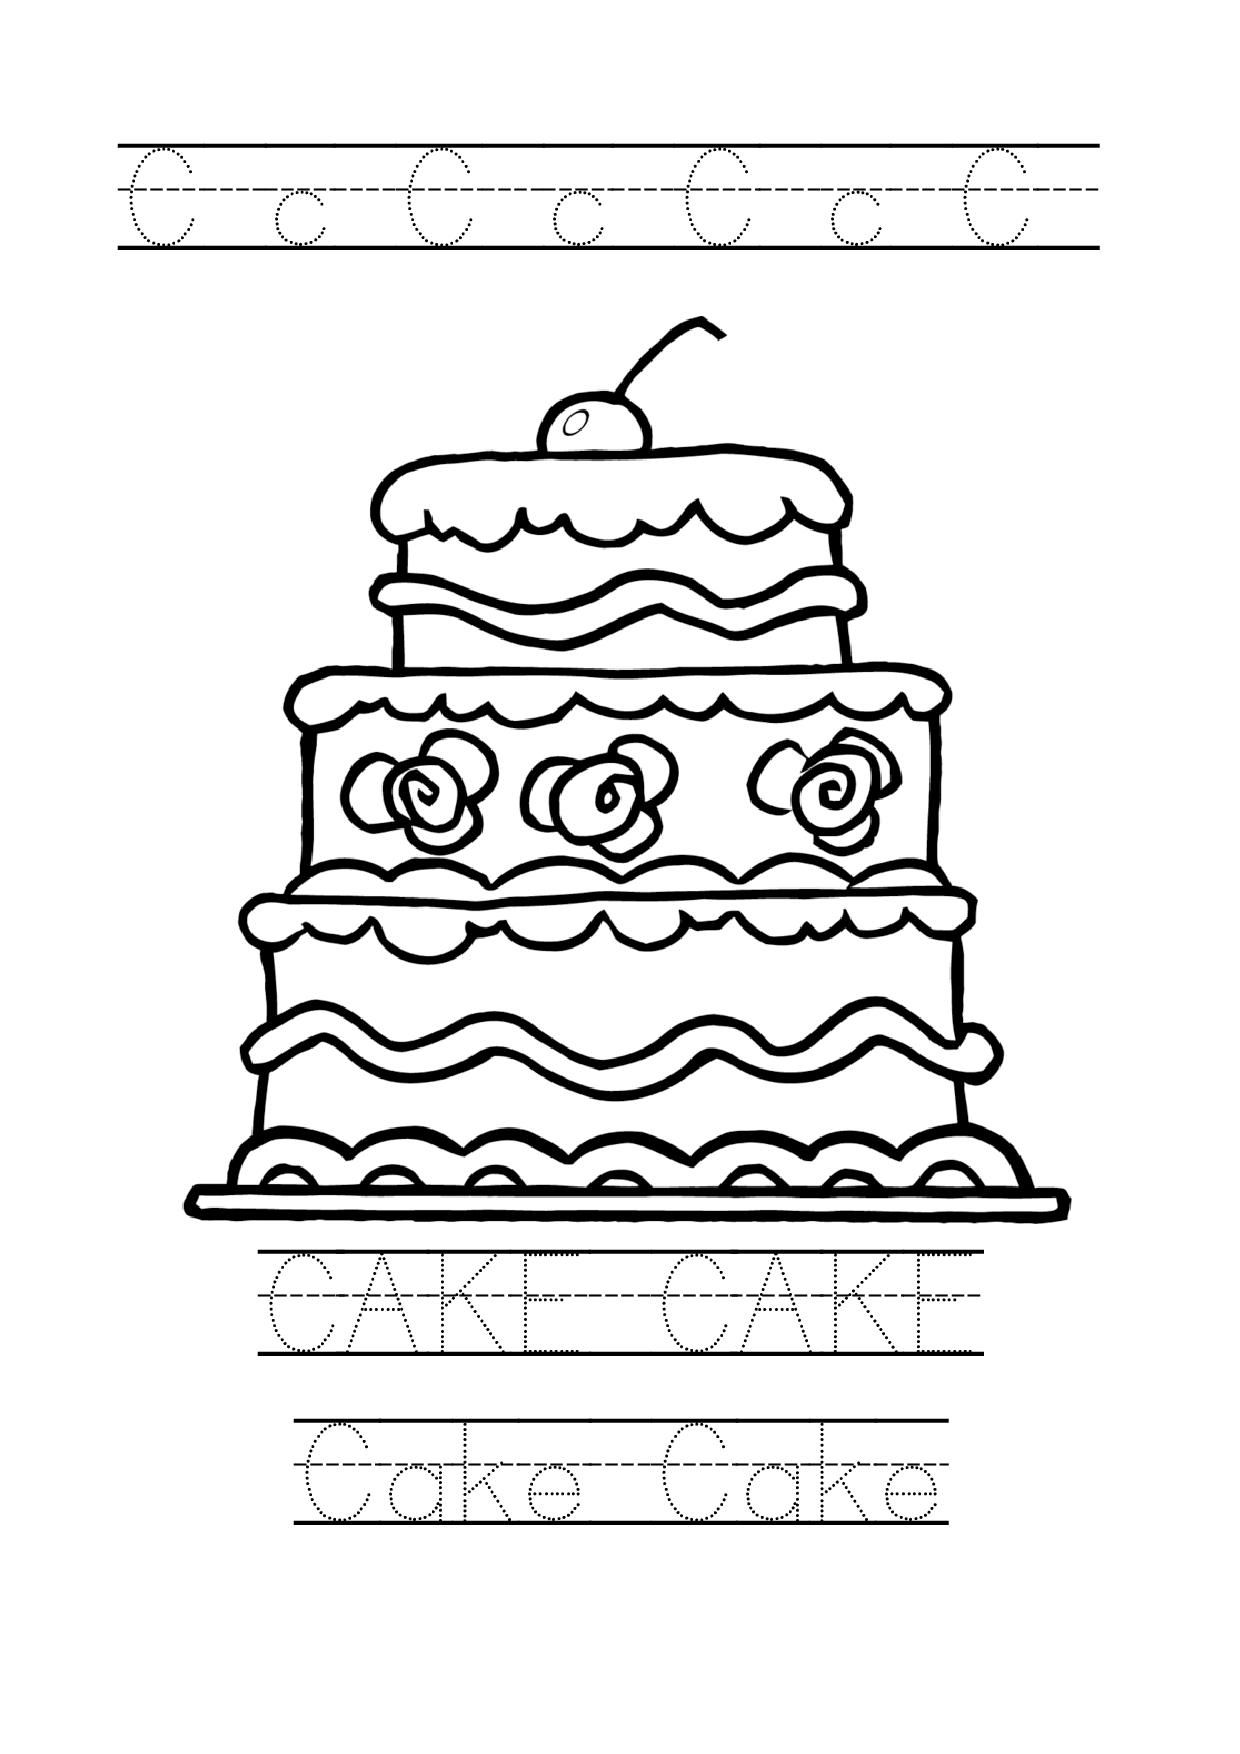 Tracing Word Cake Worksheet Cake Coloring Page For Preschool